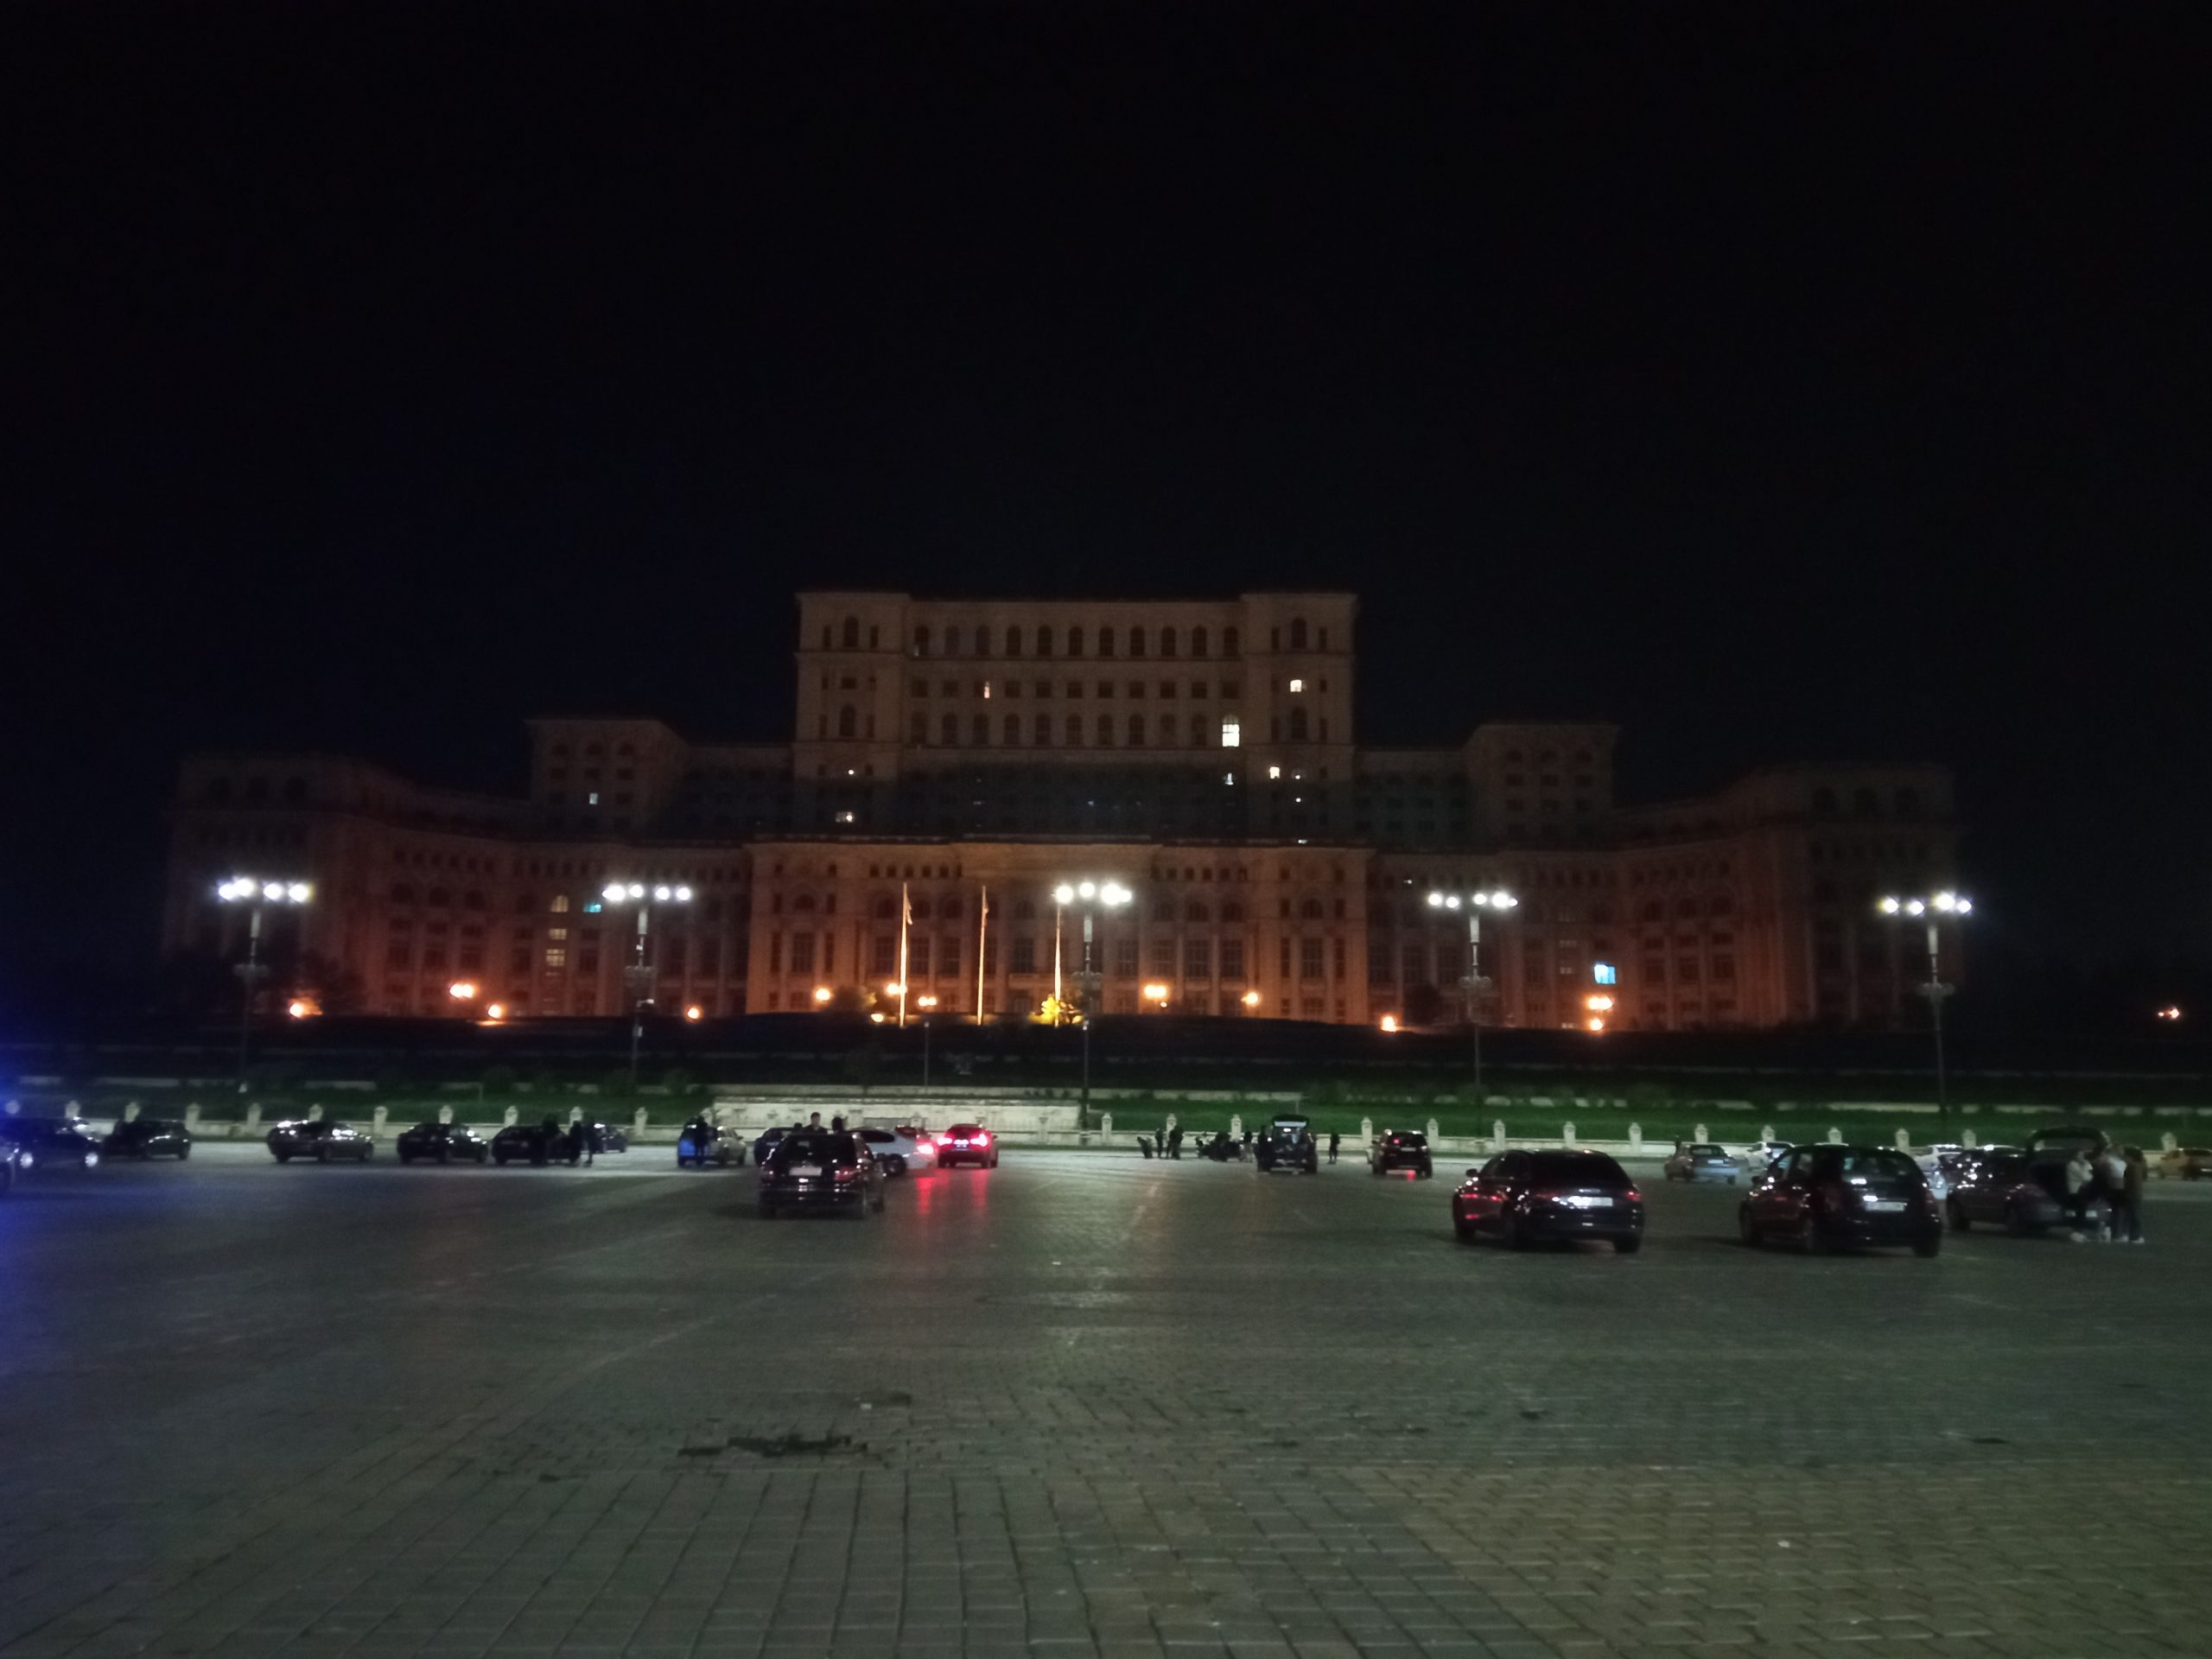 night mode xiaomi redmi 9